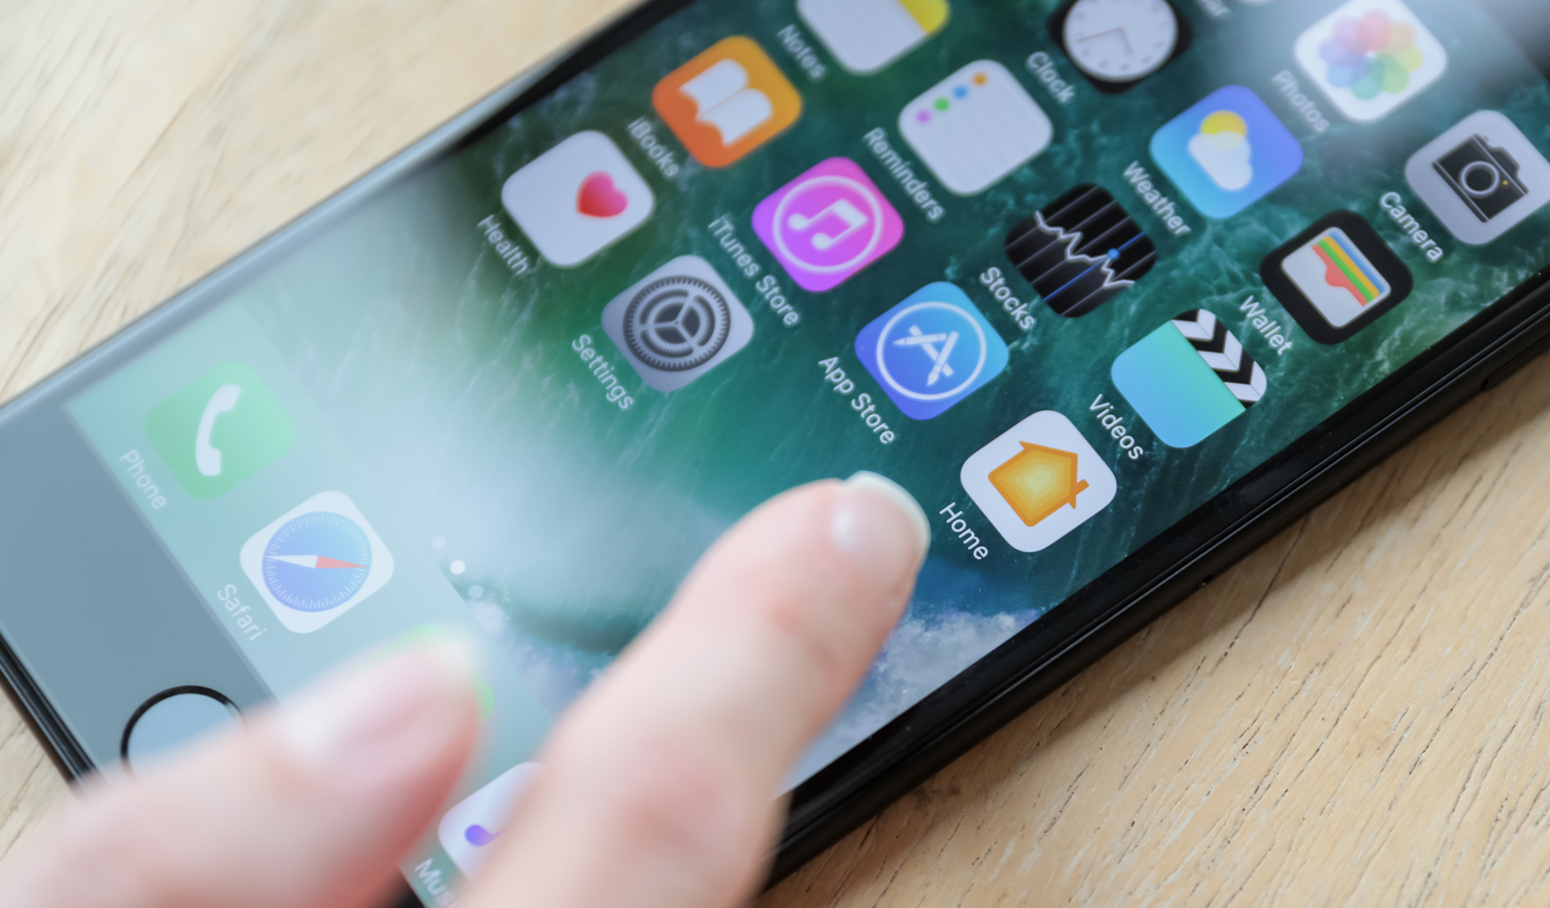 Finger touching iPhone